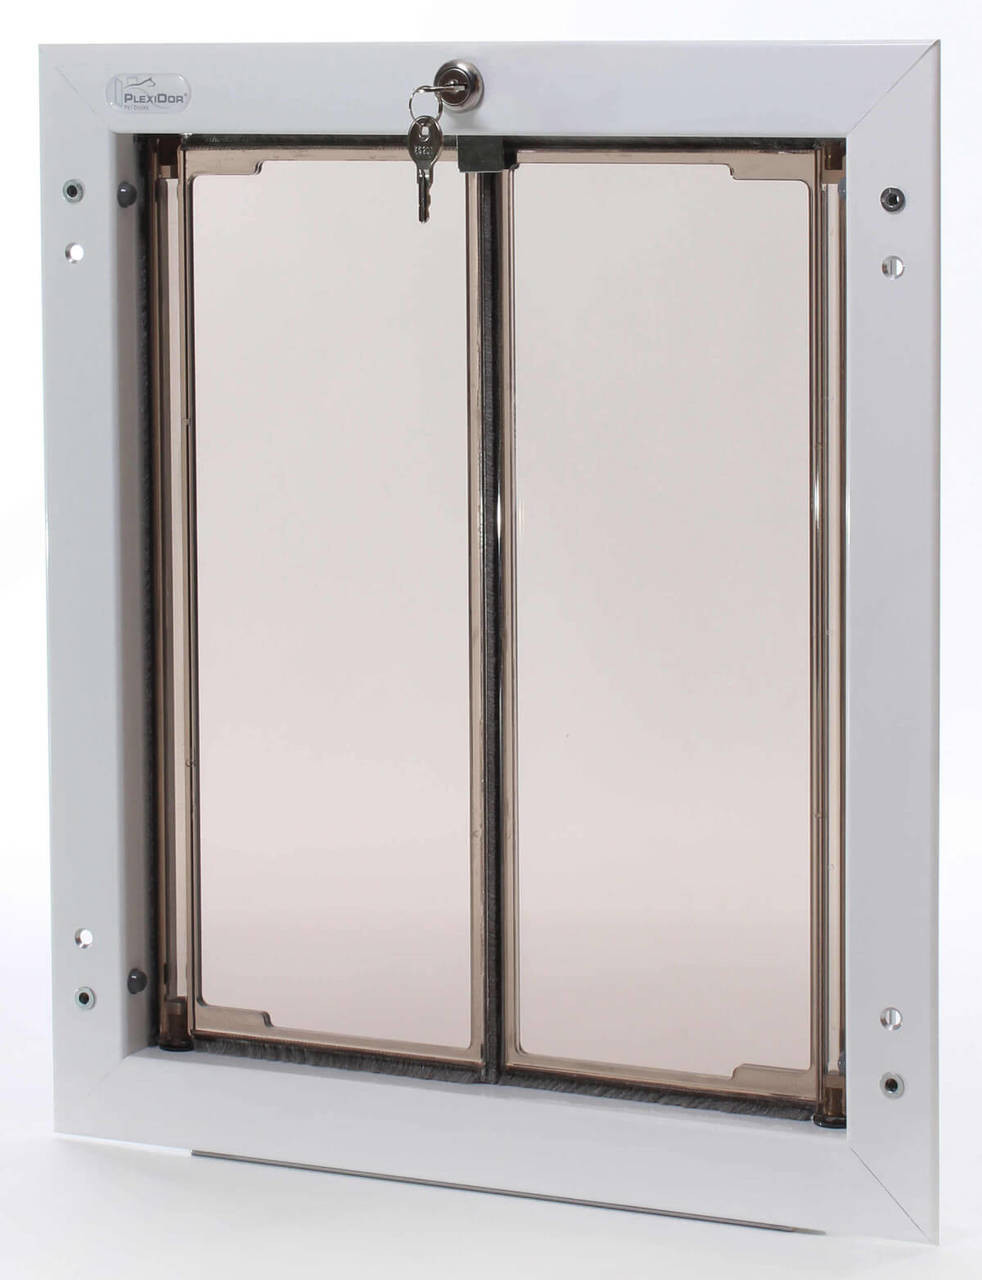 PlexiDor Wall large dog doors will fit labs and shepherds standard poodles setters and Vislas to about 100 pounds